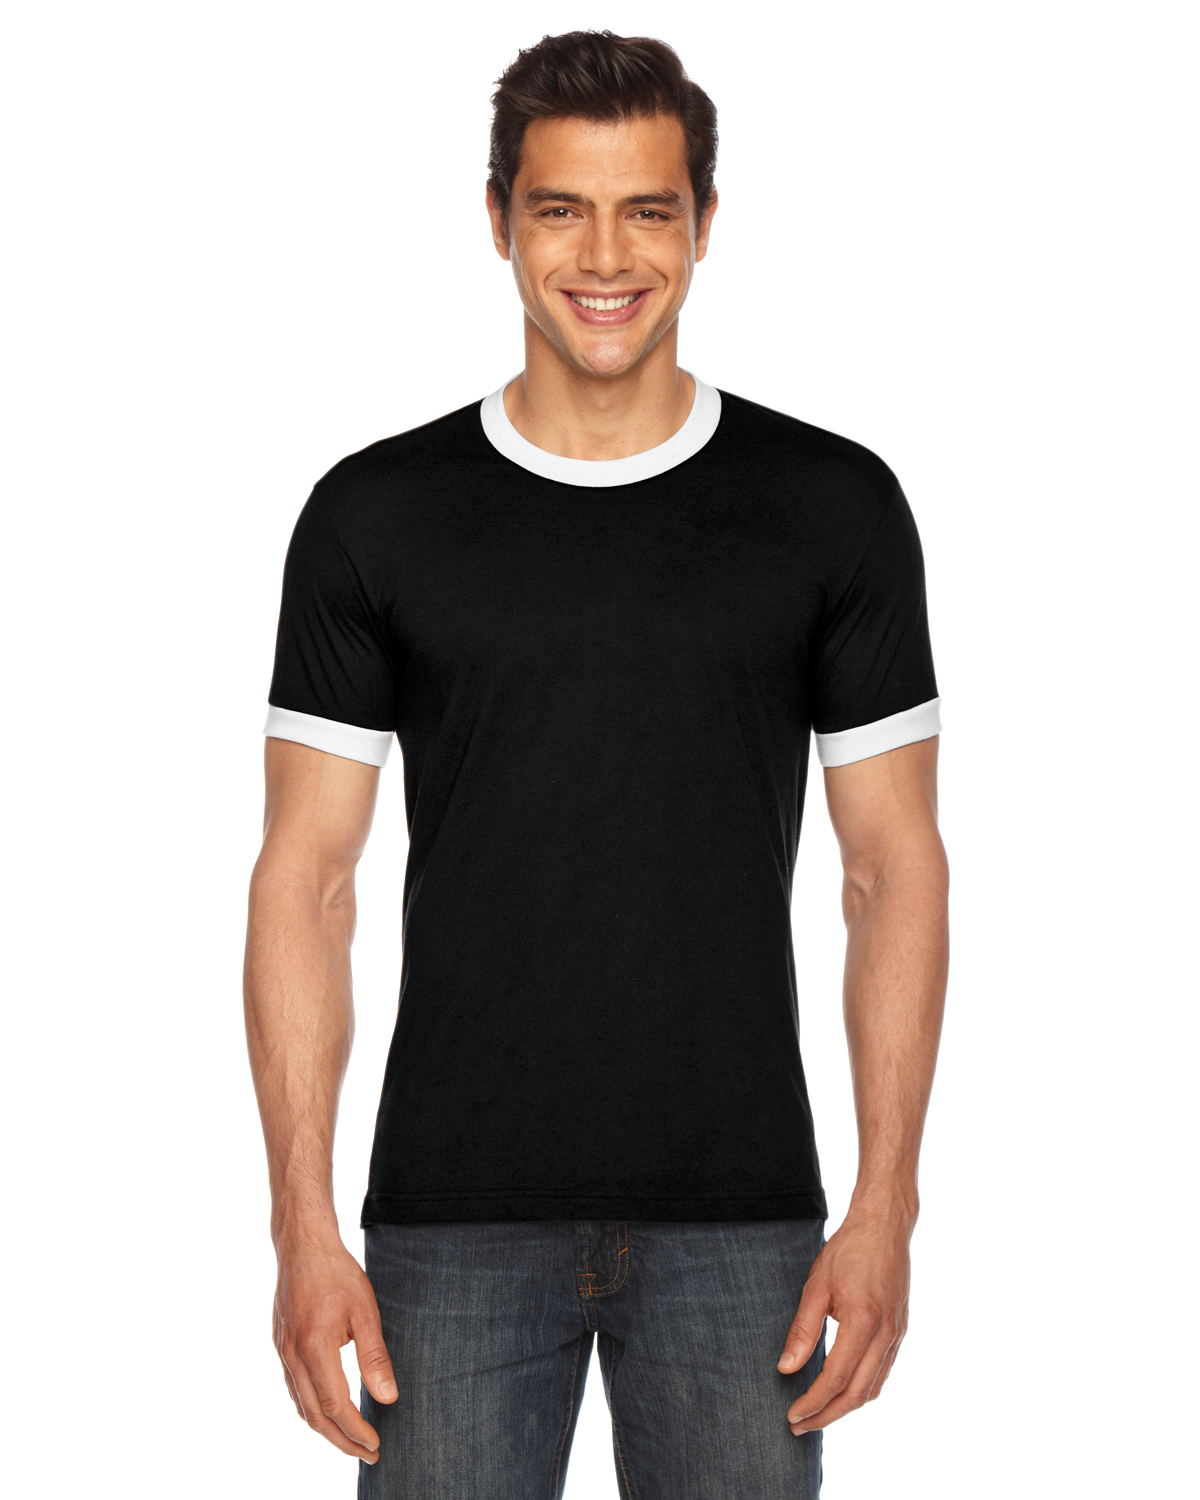 American Apparel BB410W - Unisex Poly-Cotton Short-Sleeve Ringer T-Shirt